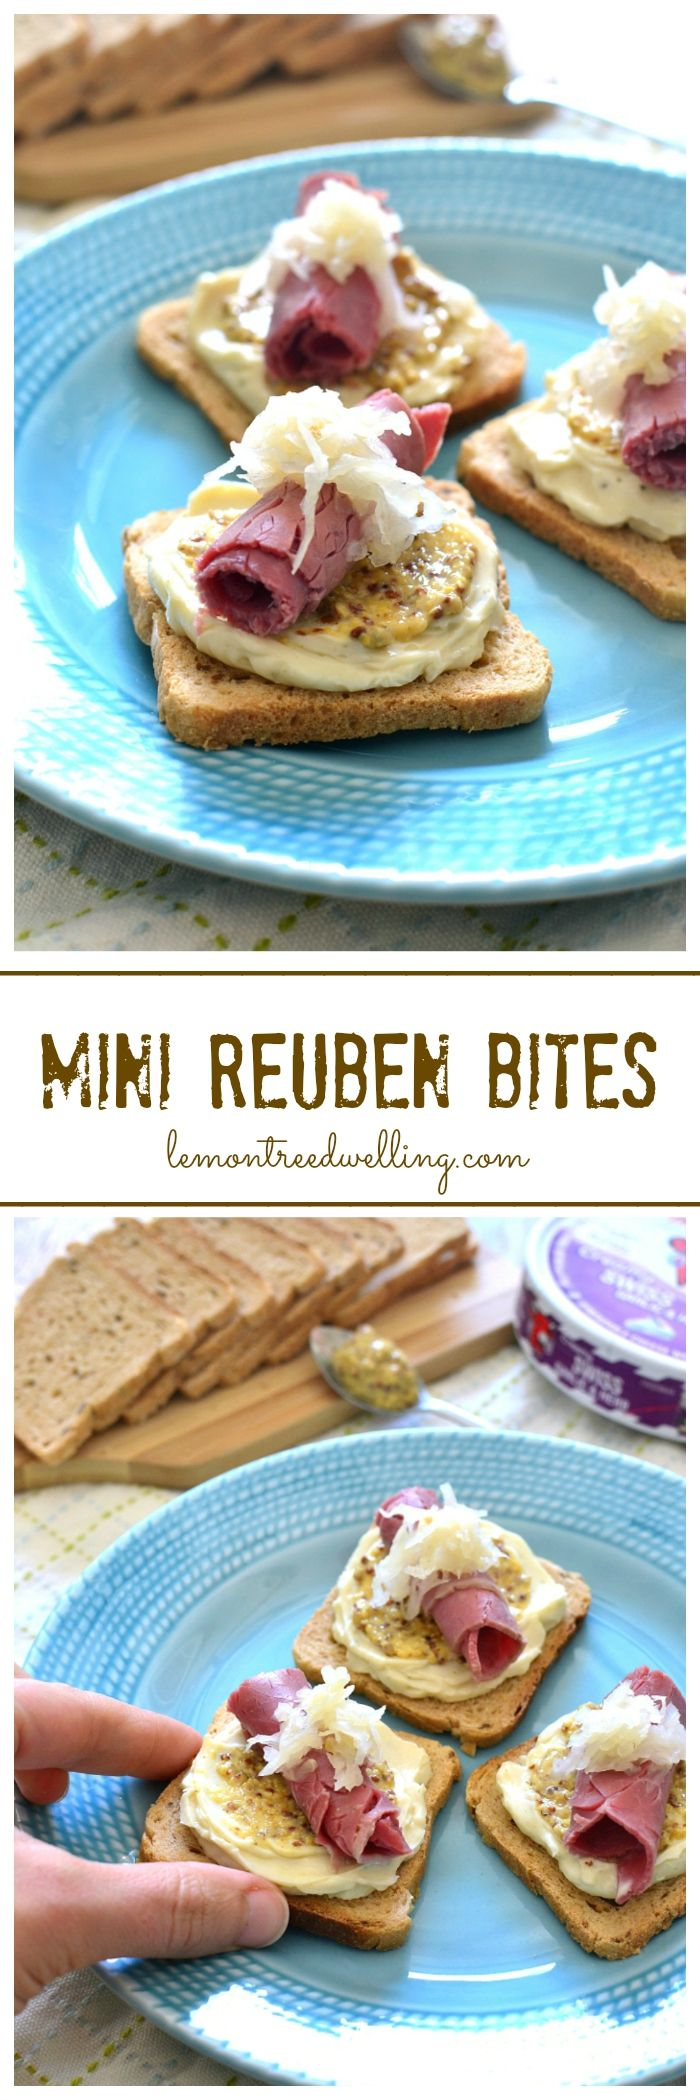 Open-face Reuben Bites made with The Laughing Cow Creamy Swiss Garlic & Herb cheese and all the fixings!